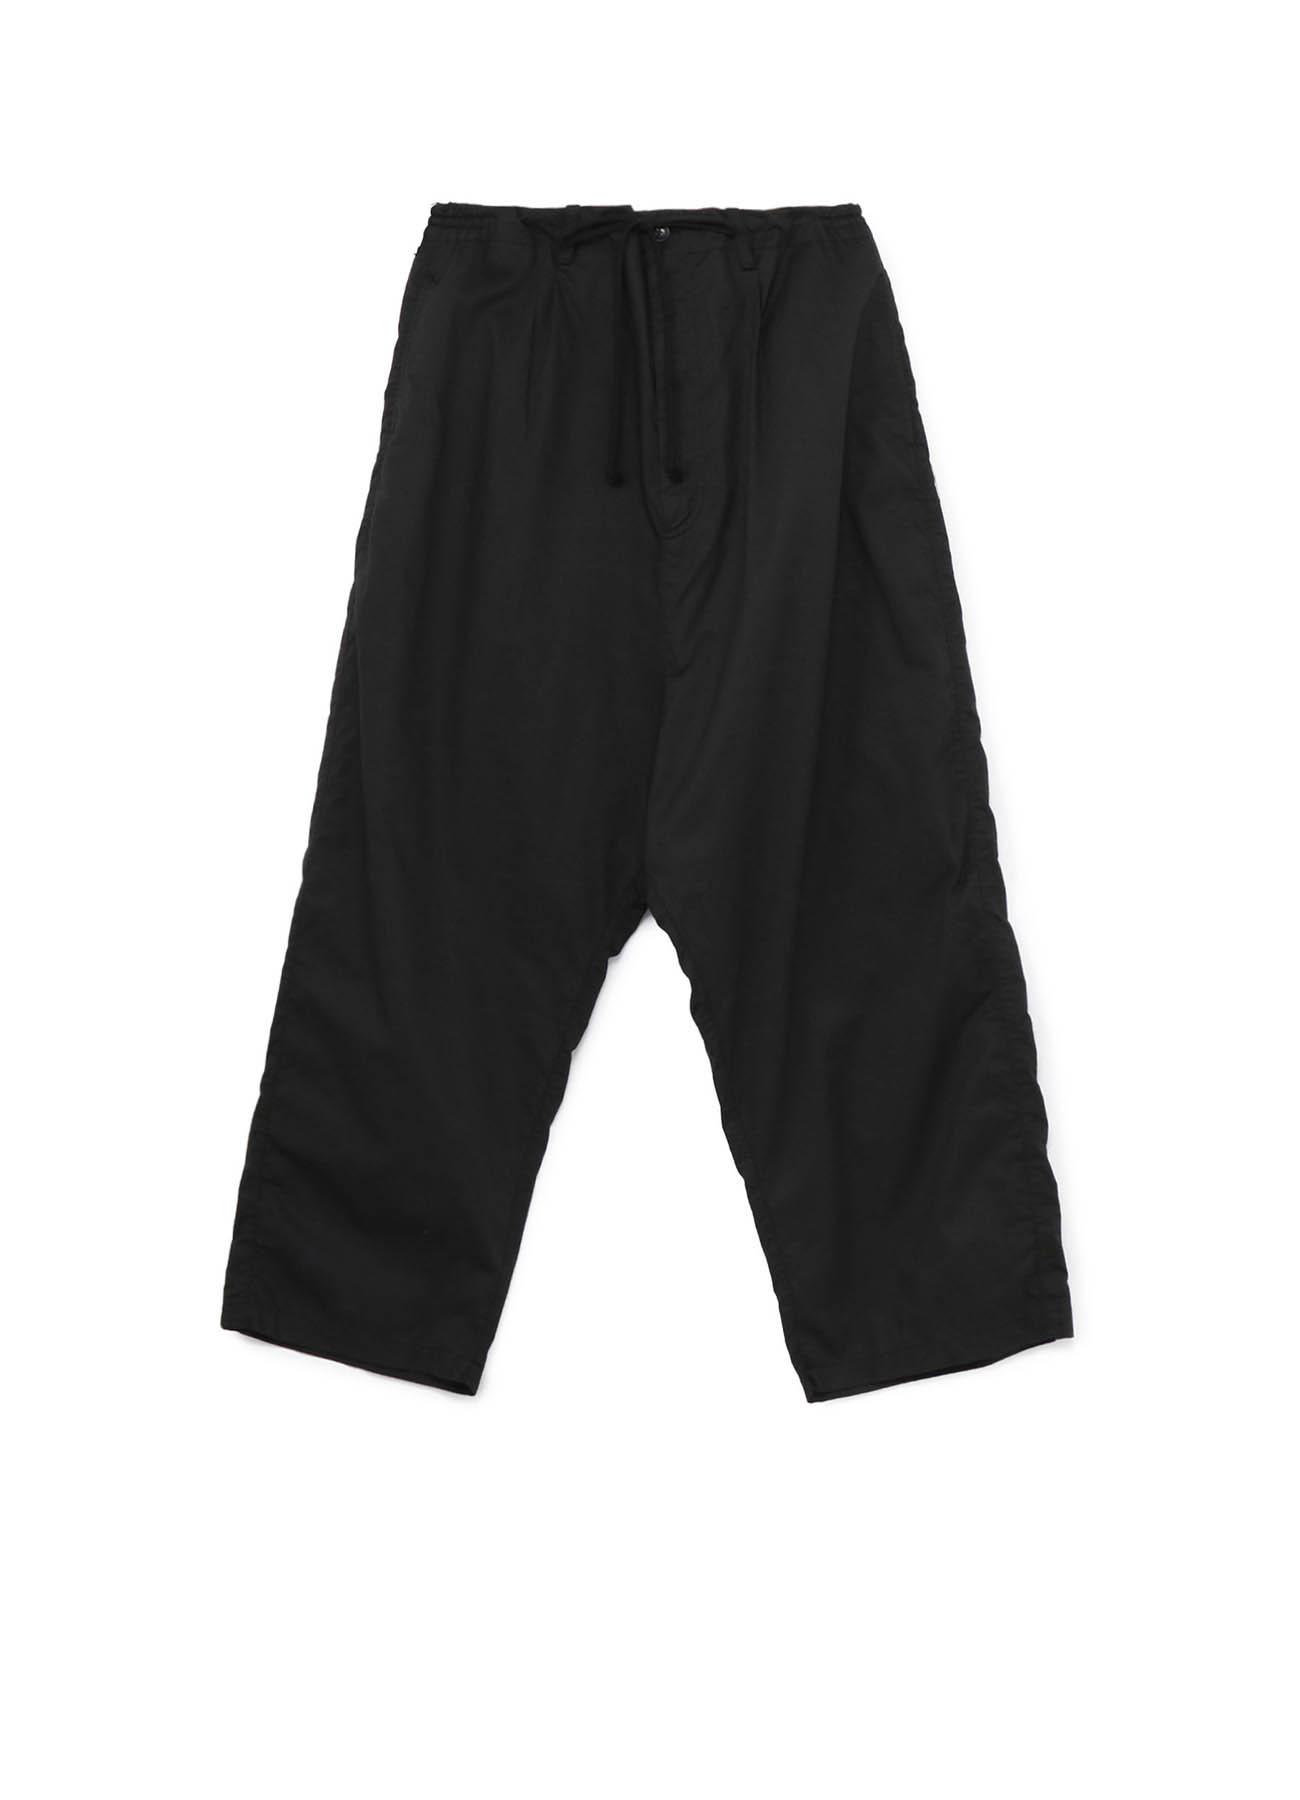 Cotton Twill One-tuck Extra Wide Sarouel Pants